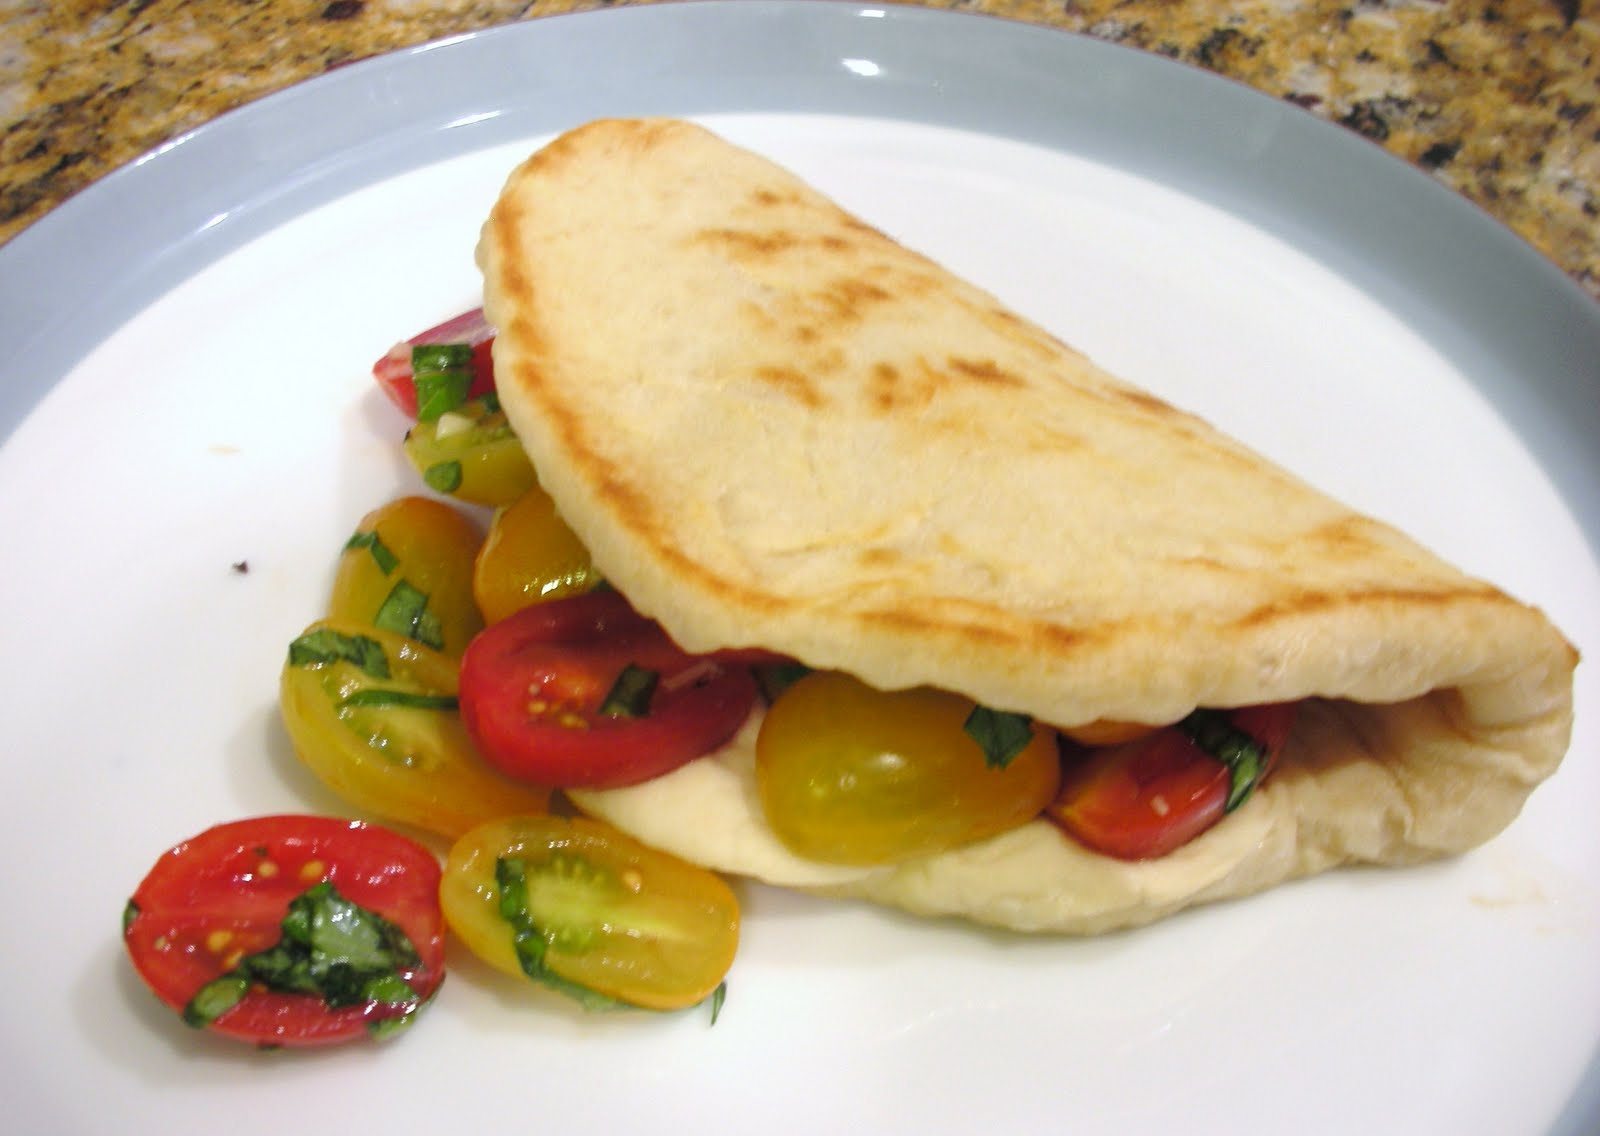 Everyday Vegan: Piadini with Cherry Tomatoes and 'Smoked Mozzarella'